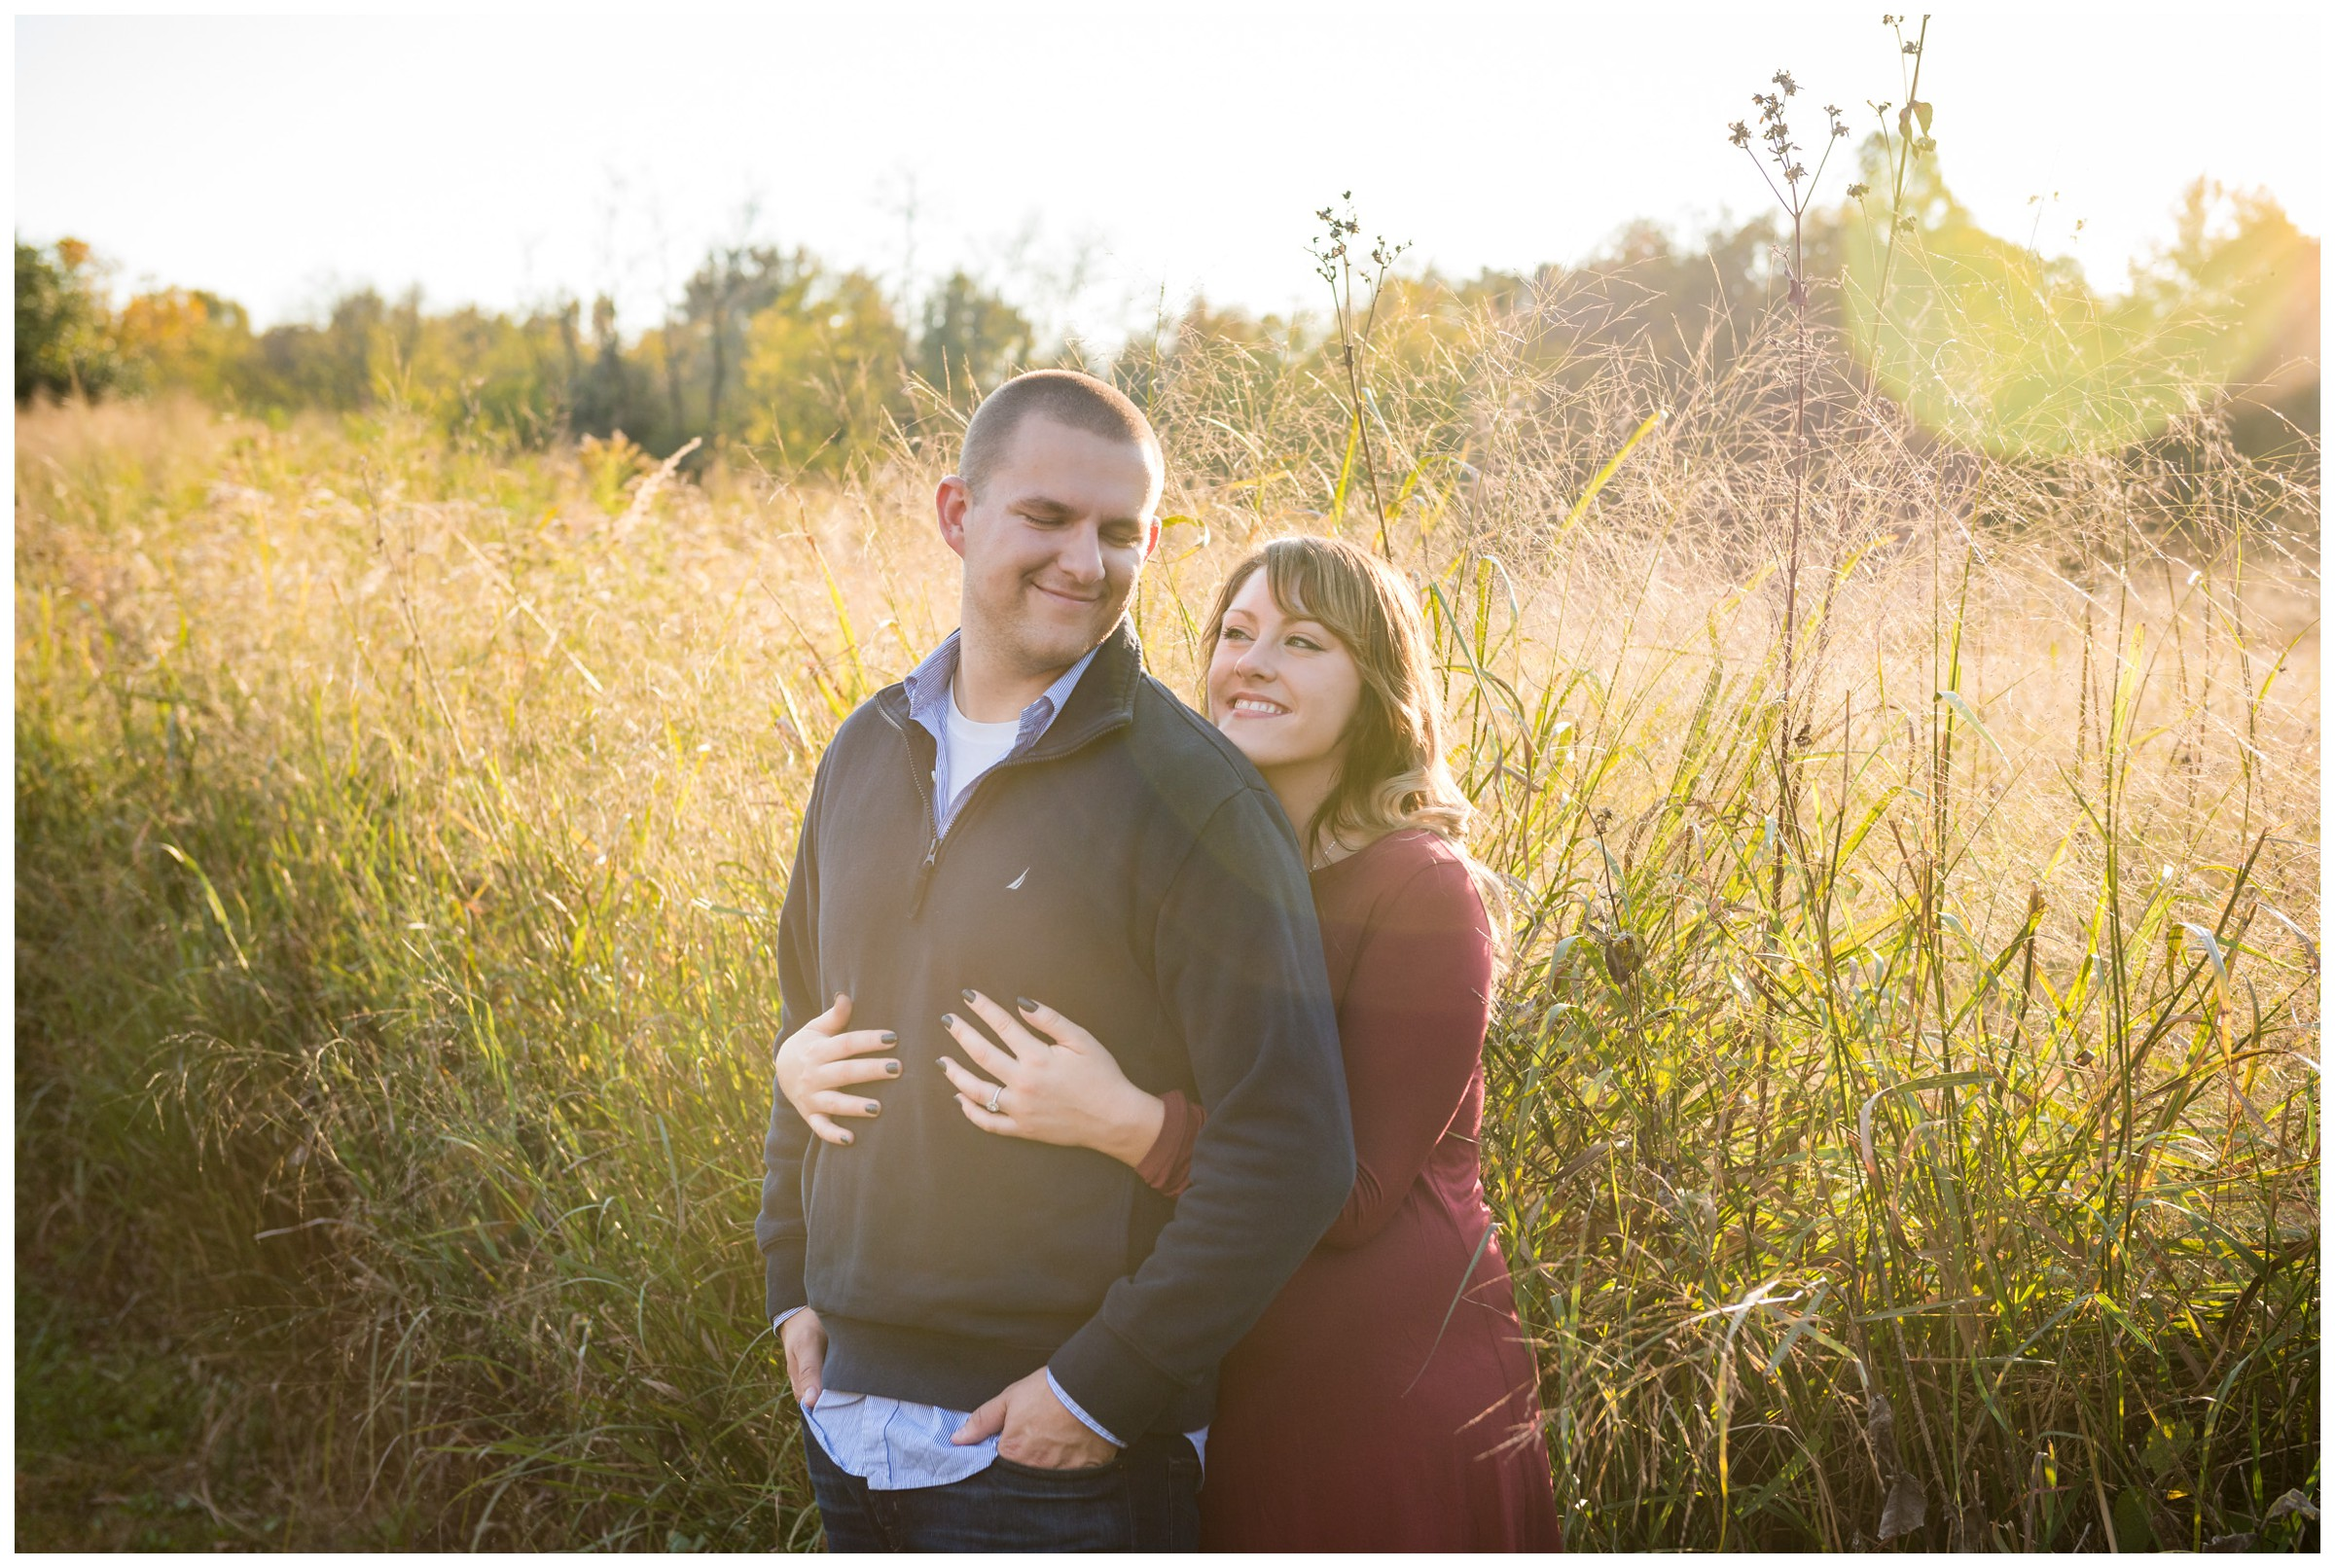 engagement photos in field at sunset in Fredericksburg, Virginia